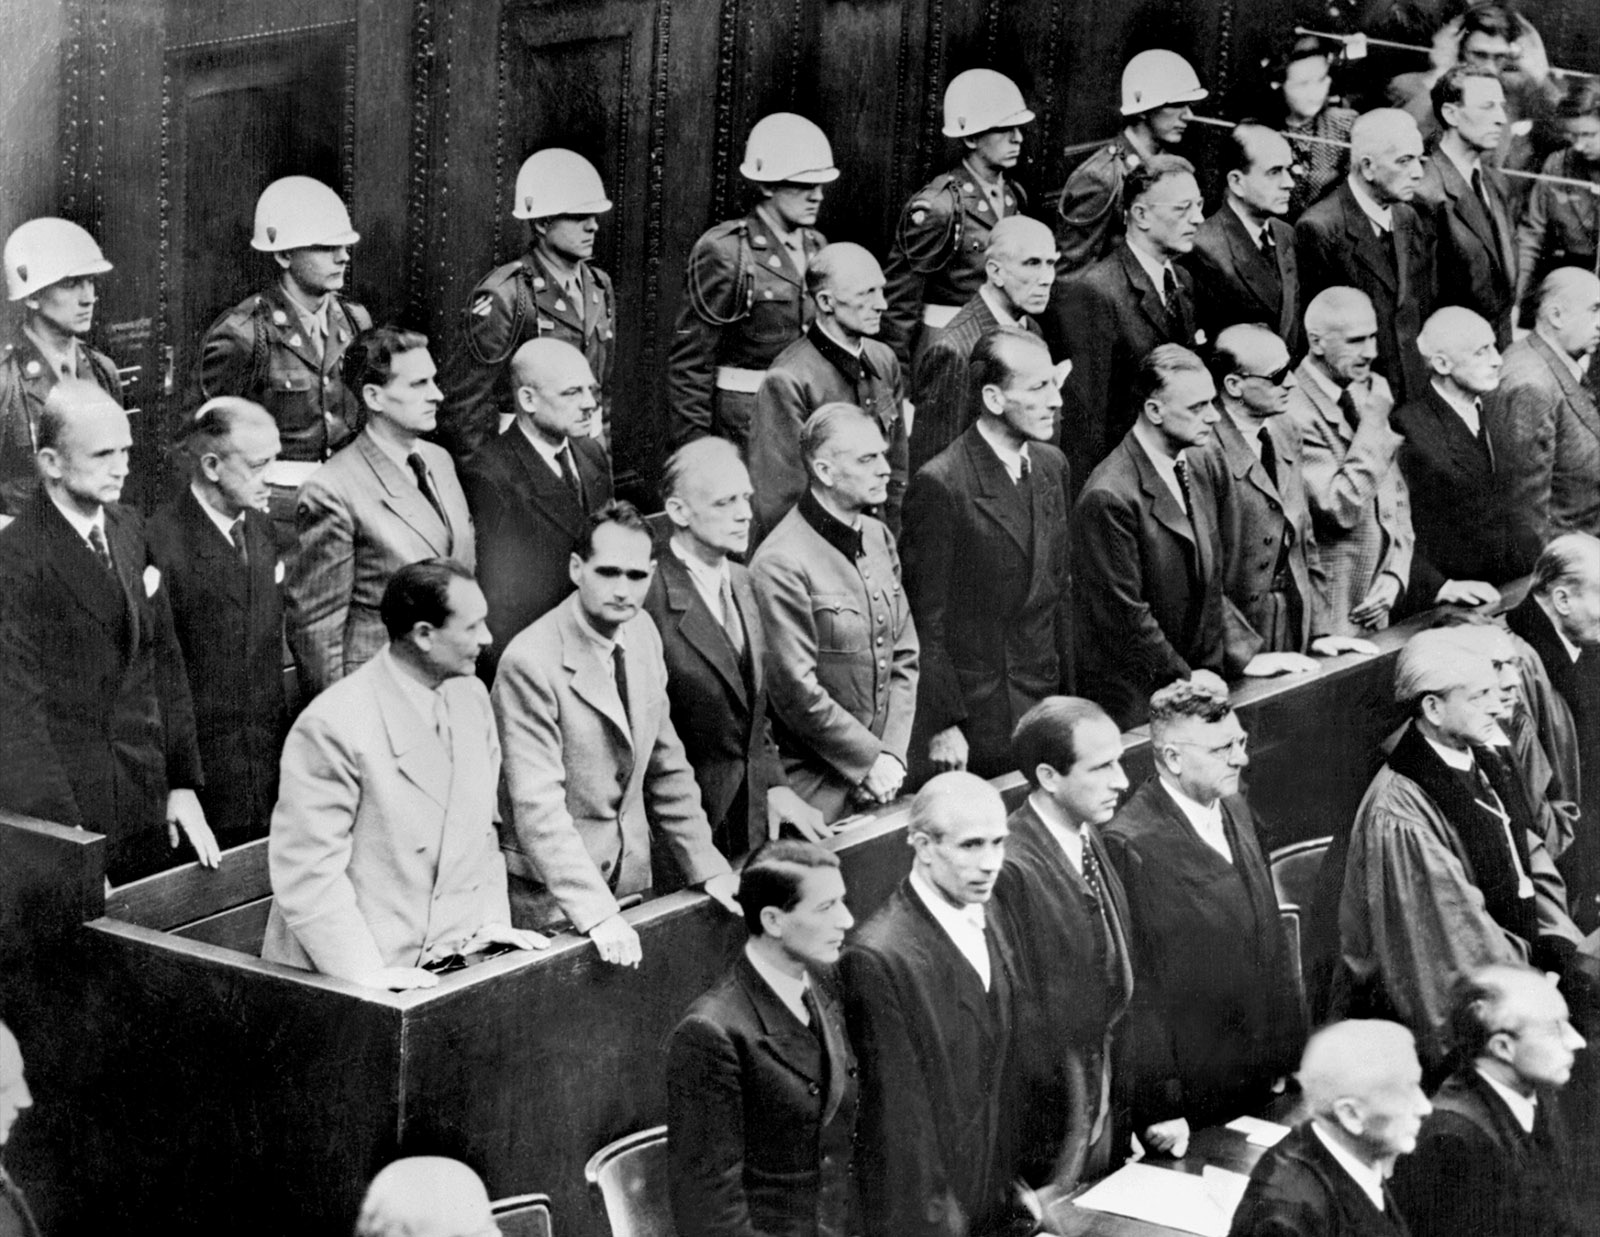 Nazi leaders accused of war crimes during World War II standing to hear the verdict in their trial, Nuremburg, October 2, 1946. Albert Speer is third from right in the back row of defendants; Karl Dönitz is at the far left of the same row.